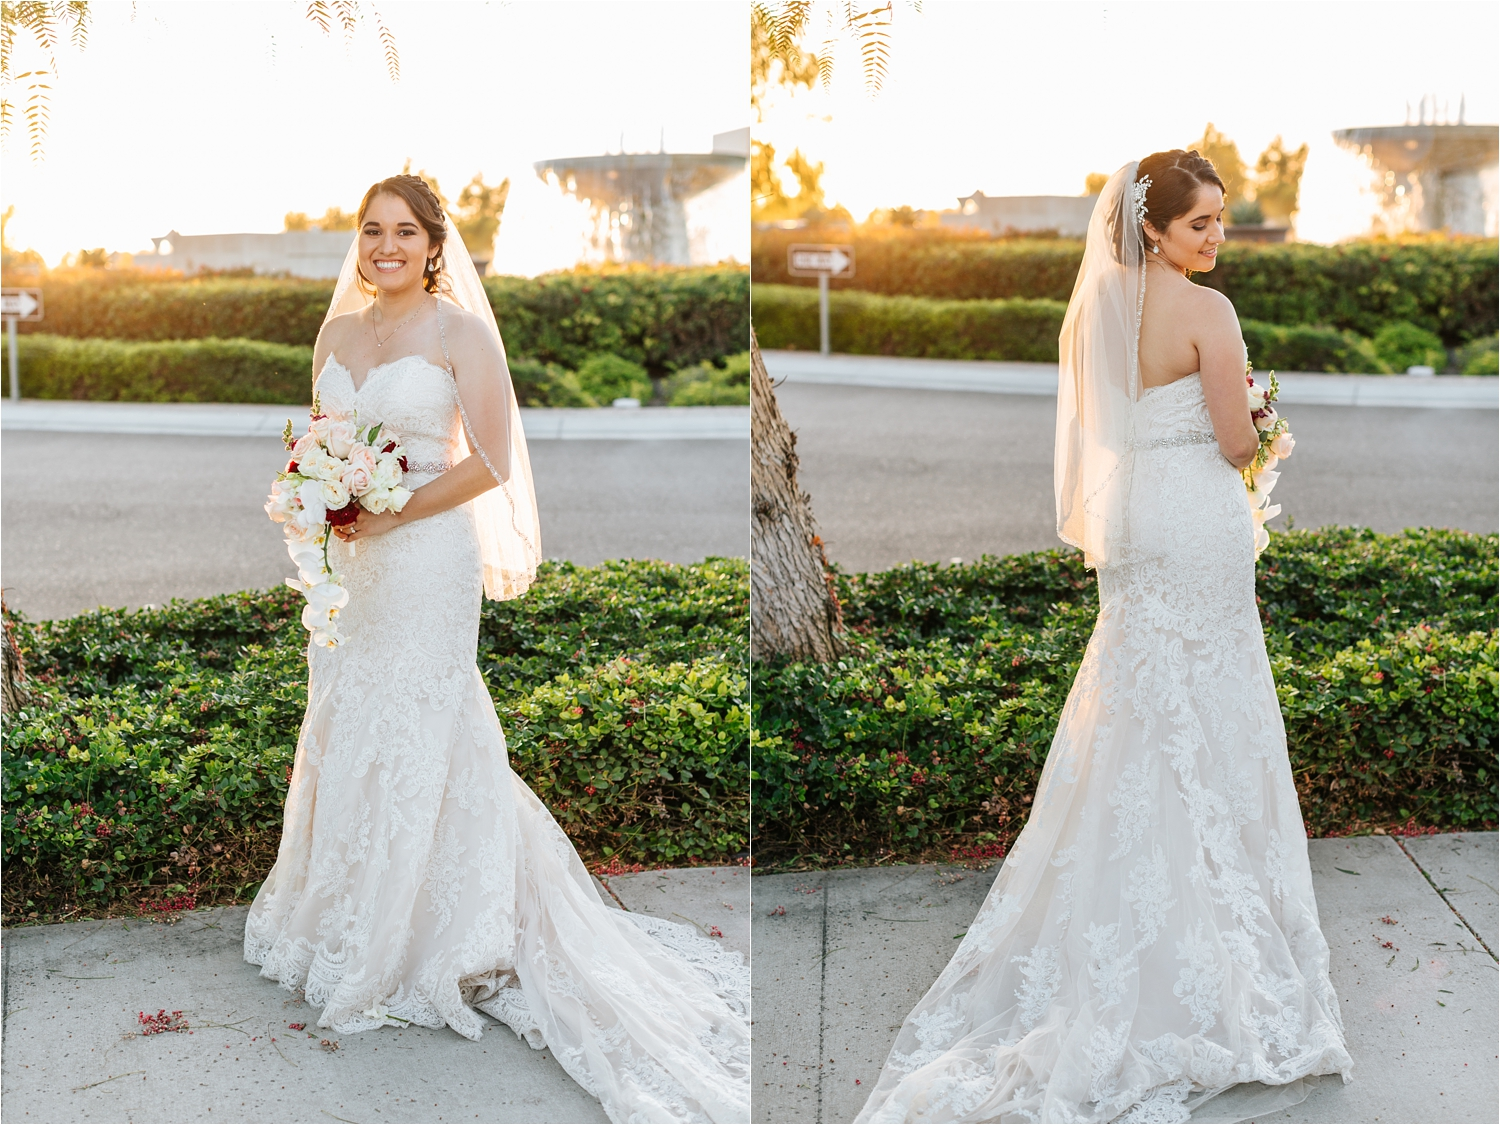 Bridal Portraits - Wedding Dress and Bouquet - https://brittneyhannonphotography.com